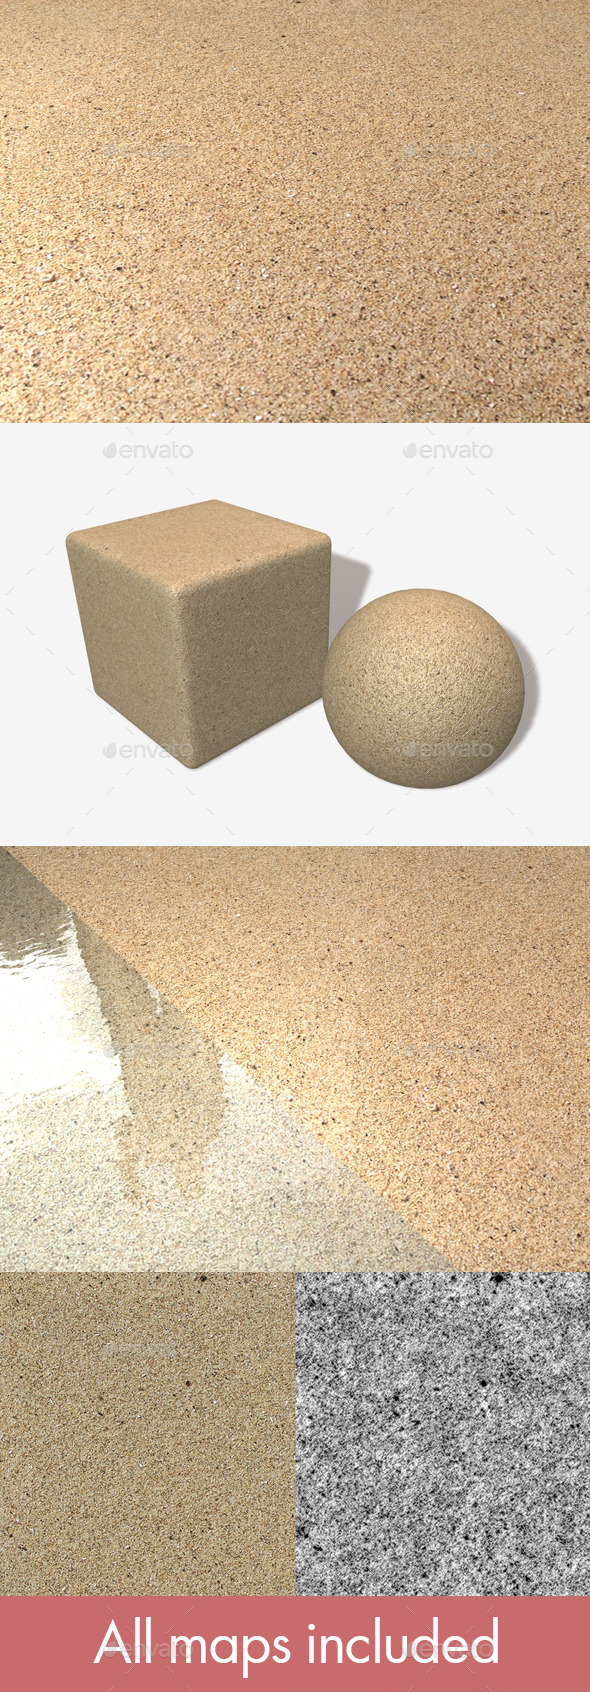 Sand Seamless Texture - 3DOcean Item for Sale